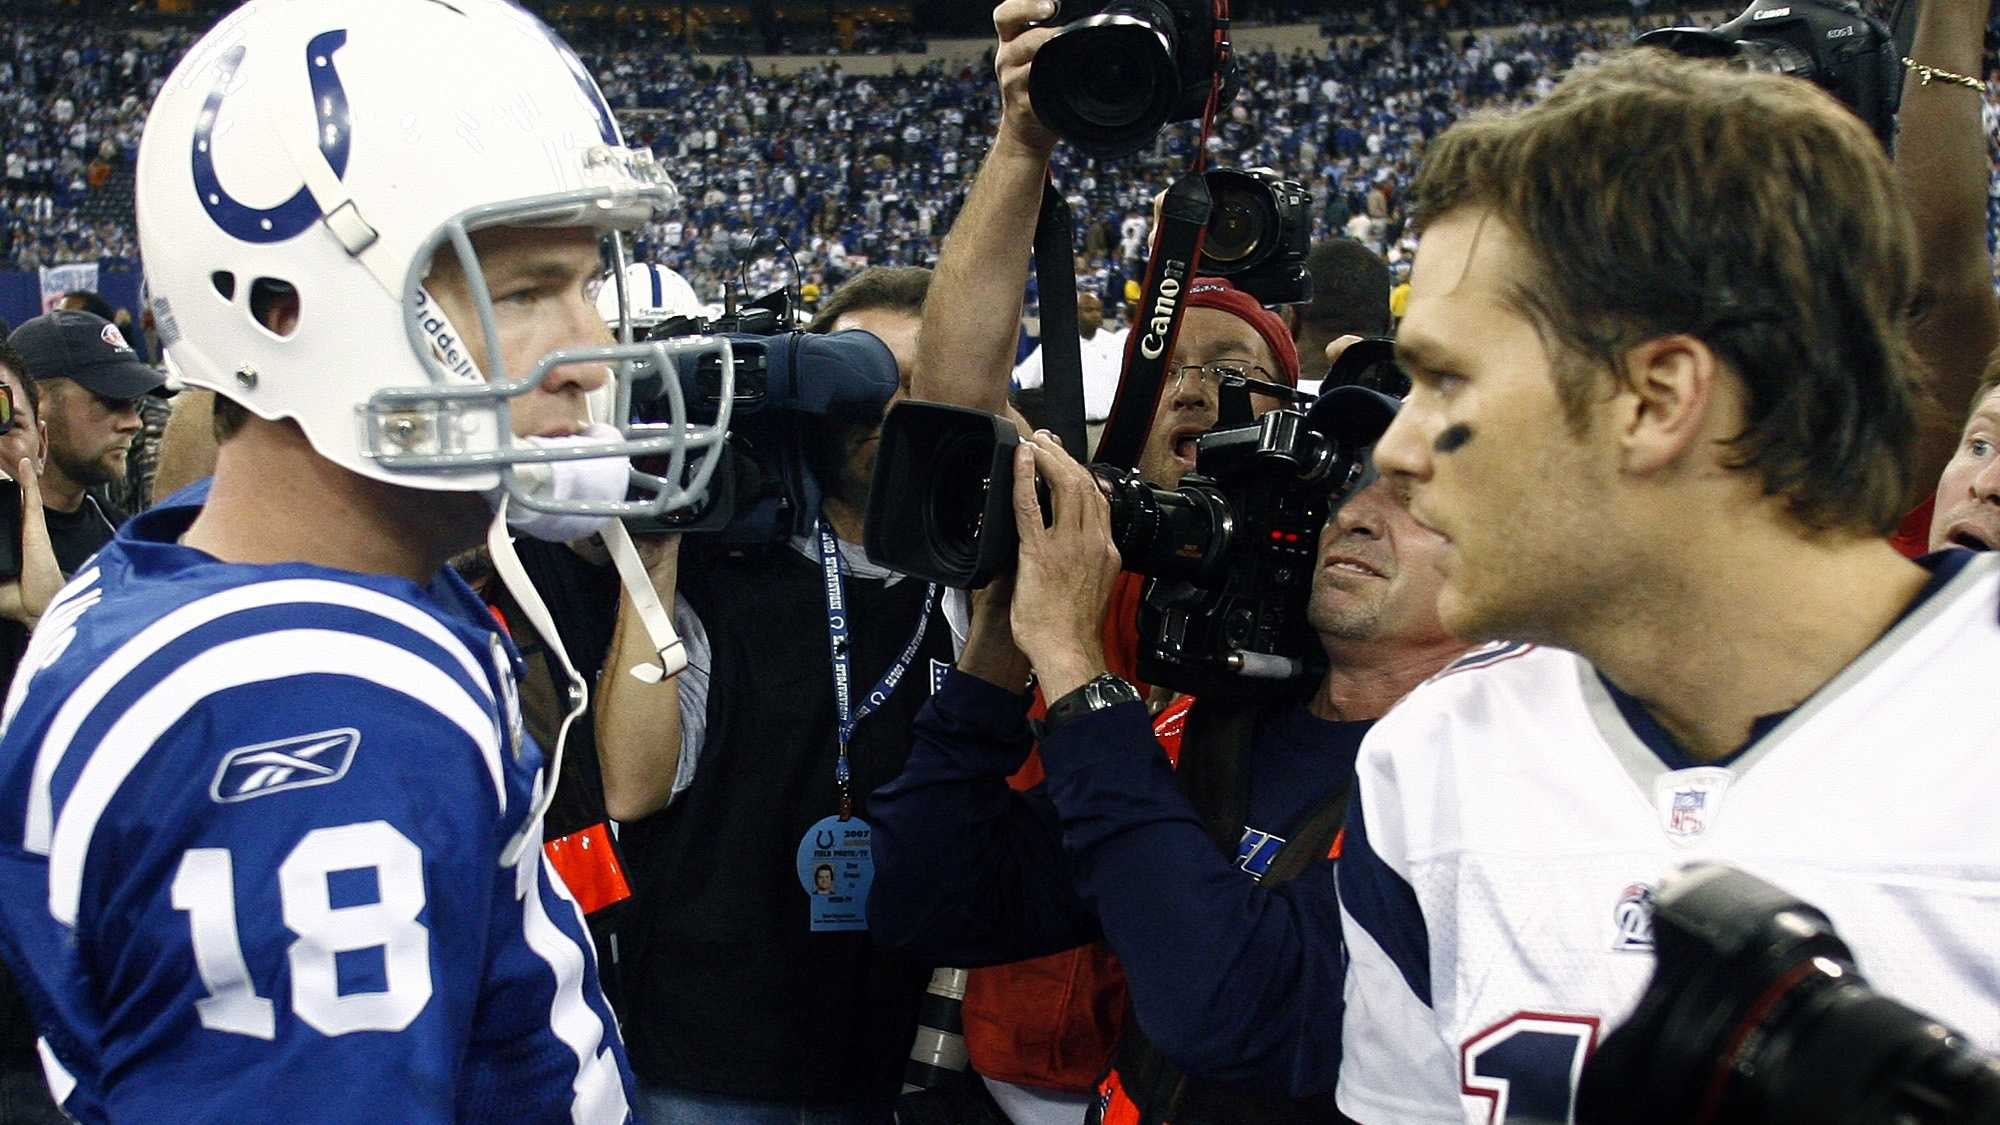 2007 AFC Championship - Patriots vs. ColtsIt was the second AFC Championship between Colts quarterback Peyton Manning and Tom Brady. The Colts managed to overcome a 21–3 deficit to the Patriots.